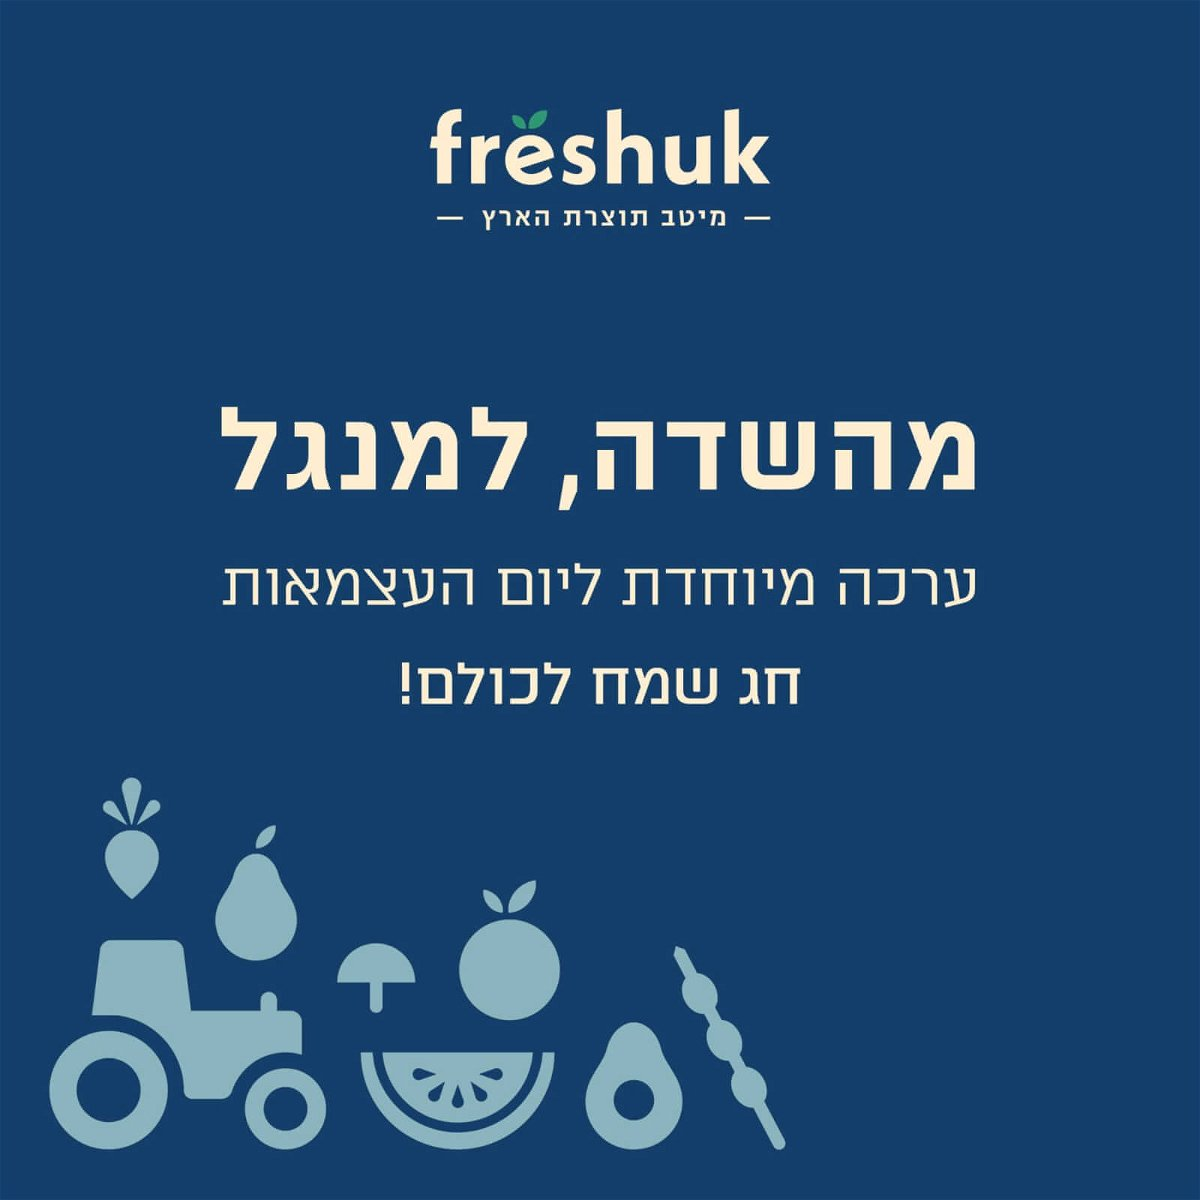 freshuk post independence day